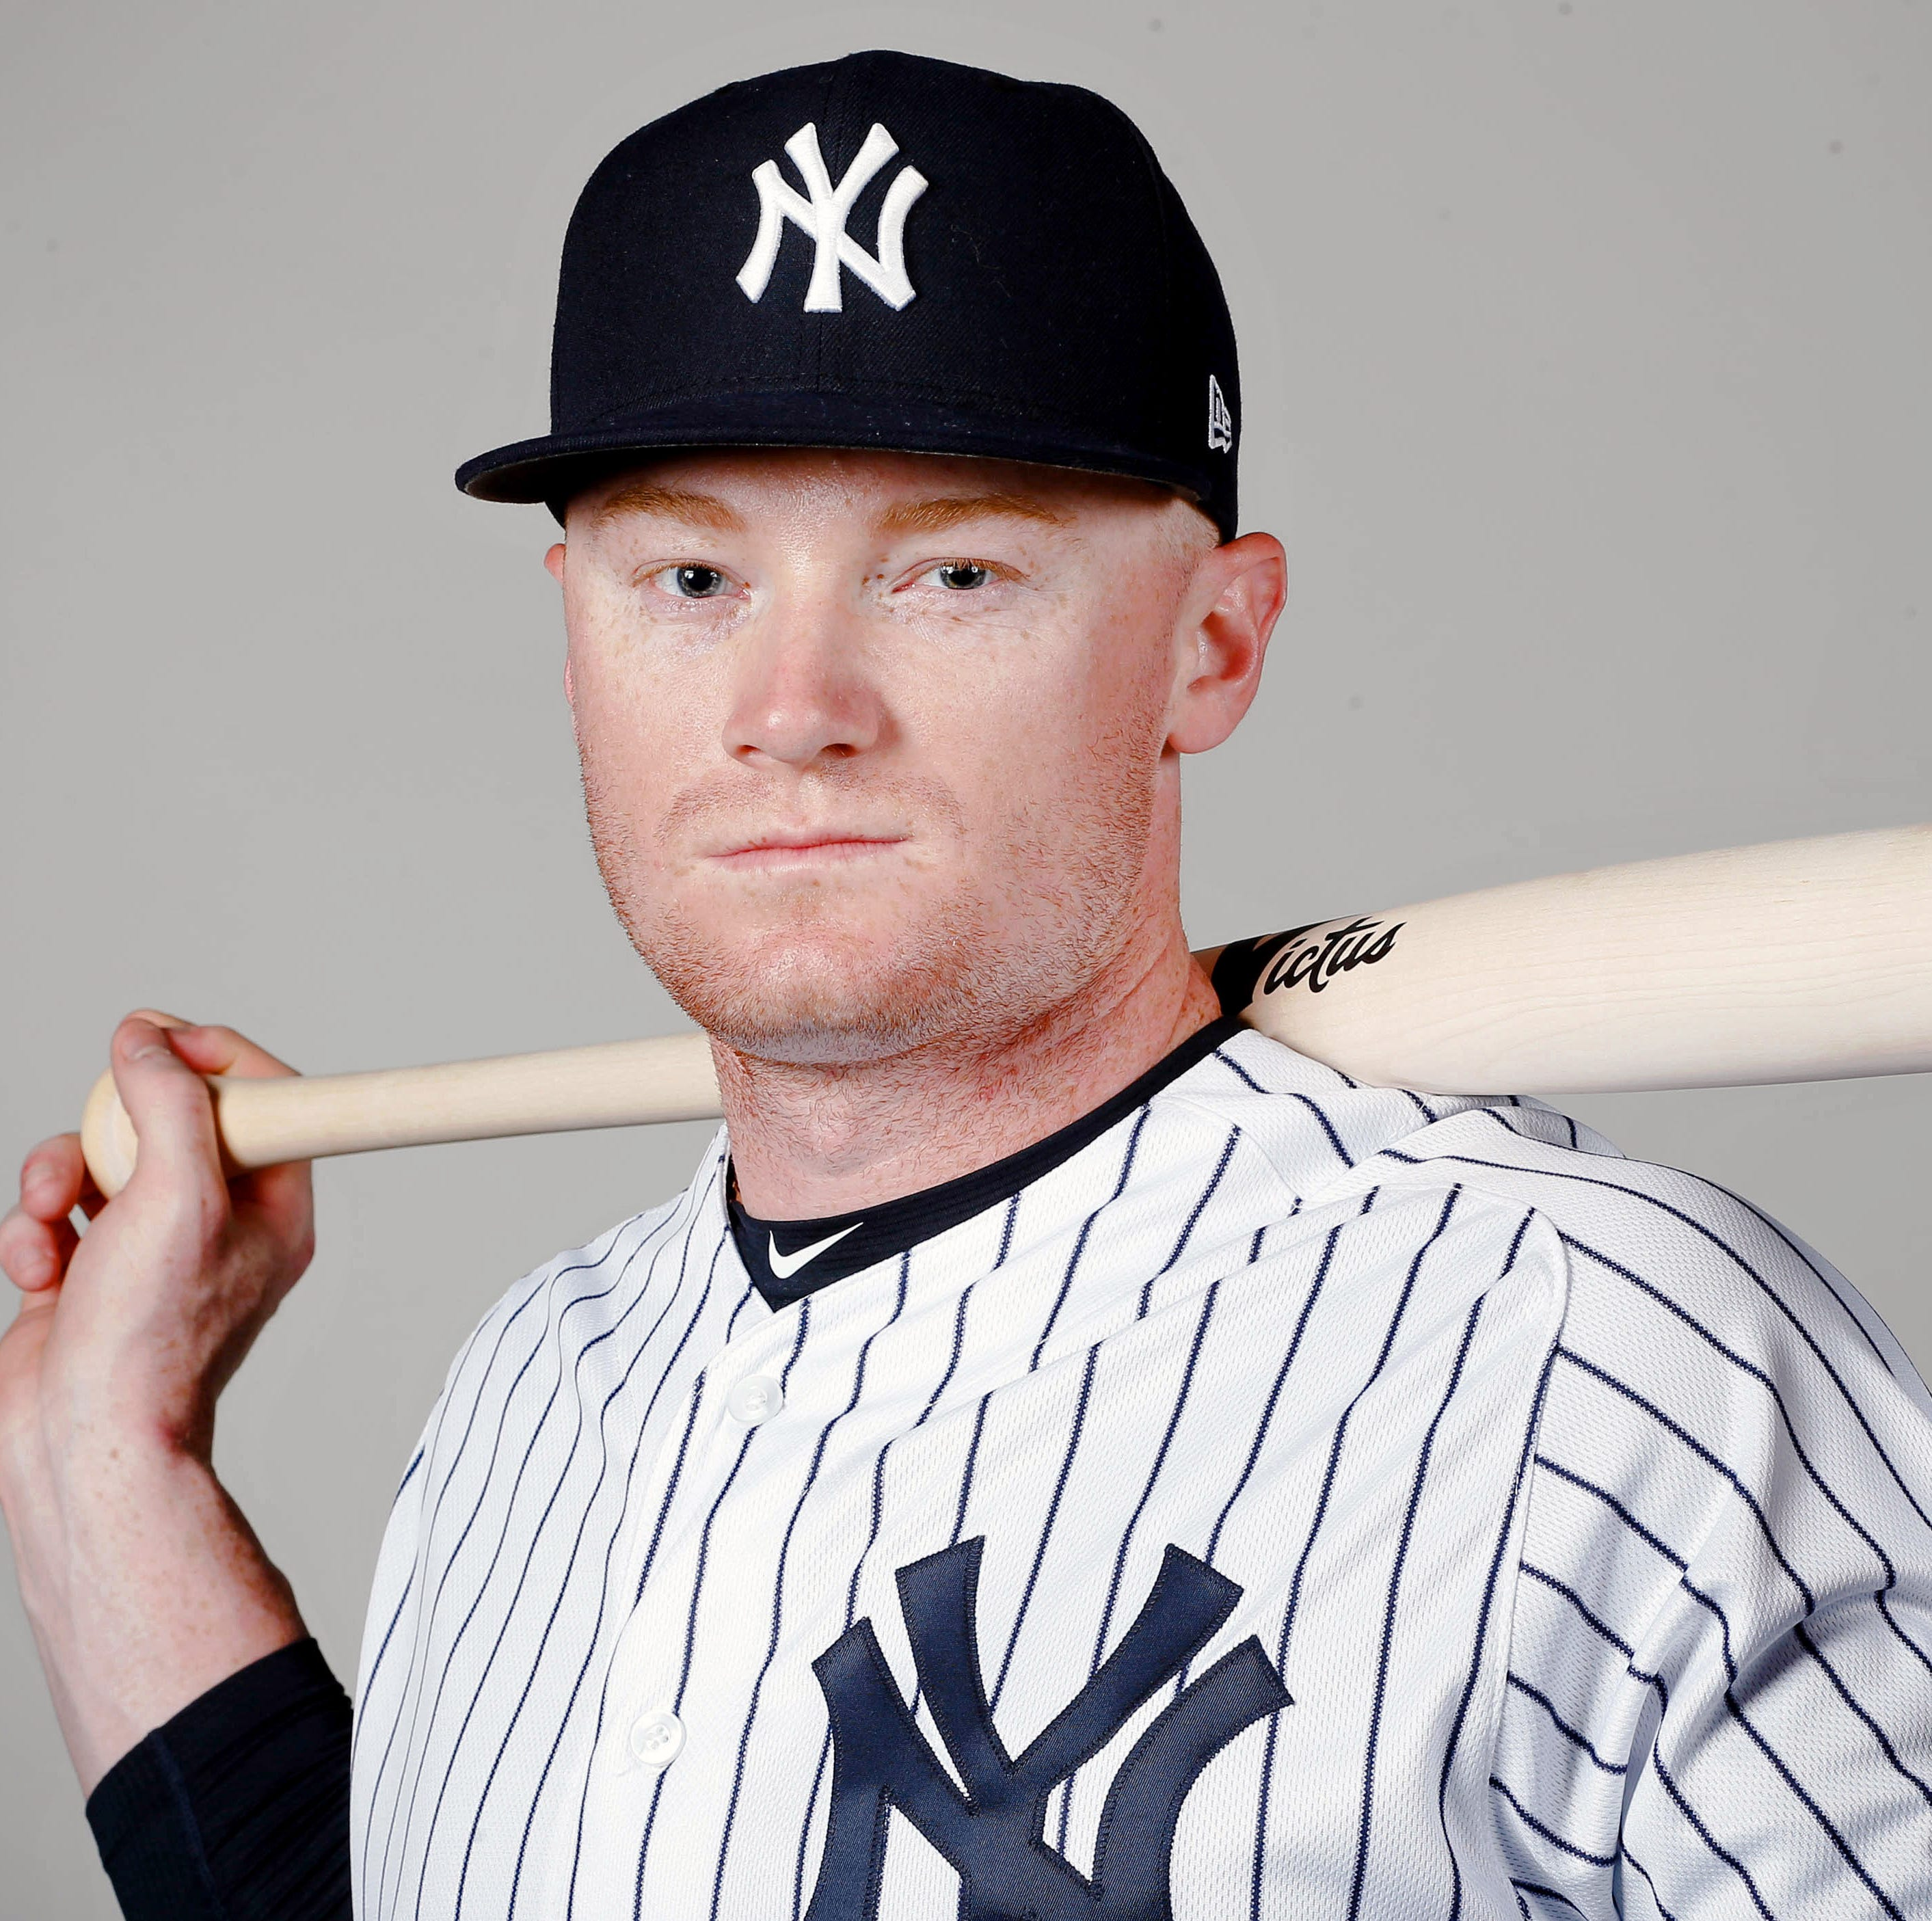 Respect rules as Clint Frazier, Brett Gardner stake claims at Yankees spring training